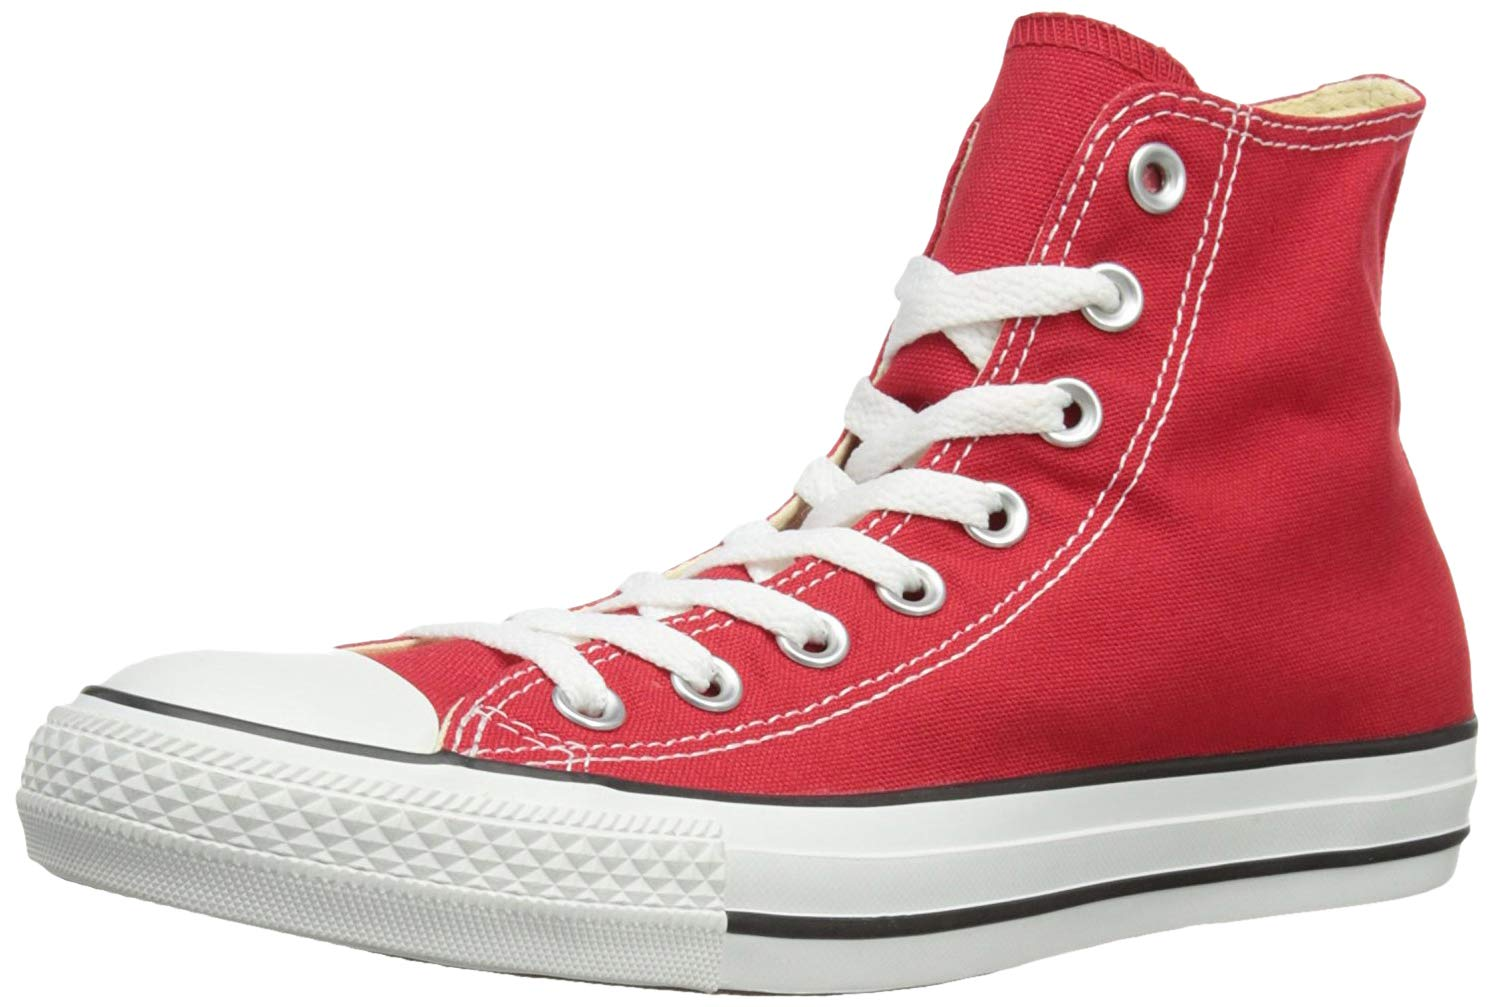 Converse Chuck Taylor All Star Canvas High Top Sneaker, red, 3.5 M US